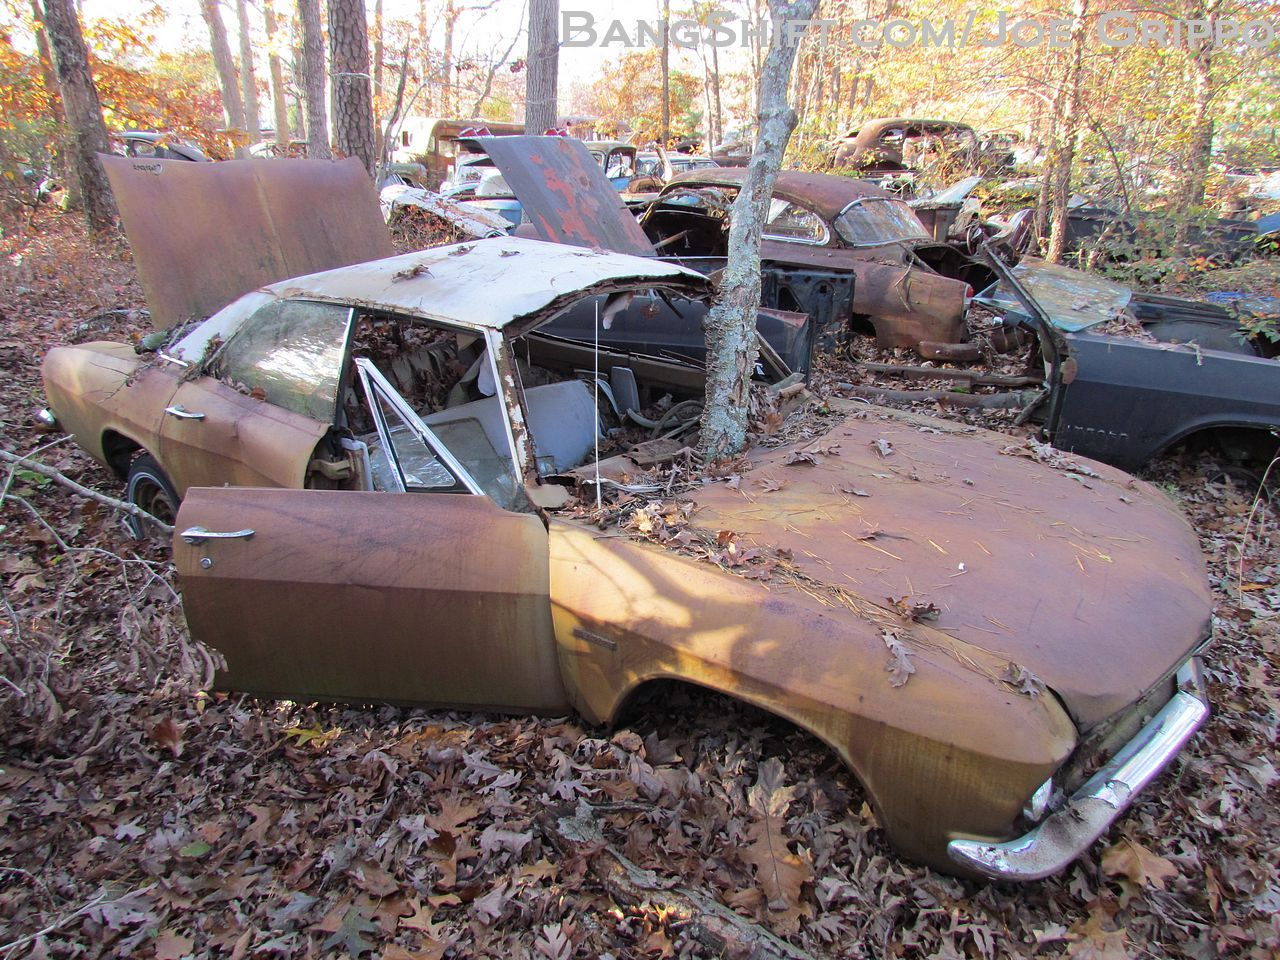 junkyard for cars - Google Search | Cars abandoned or forgotten ...